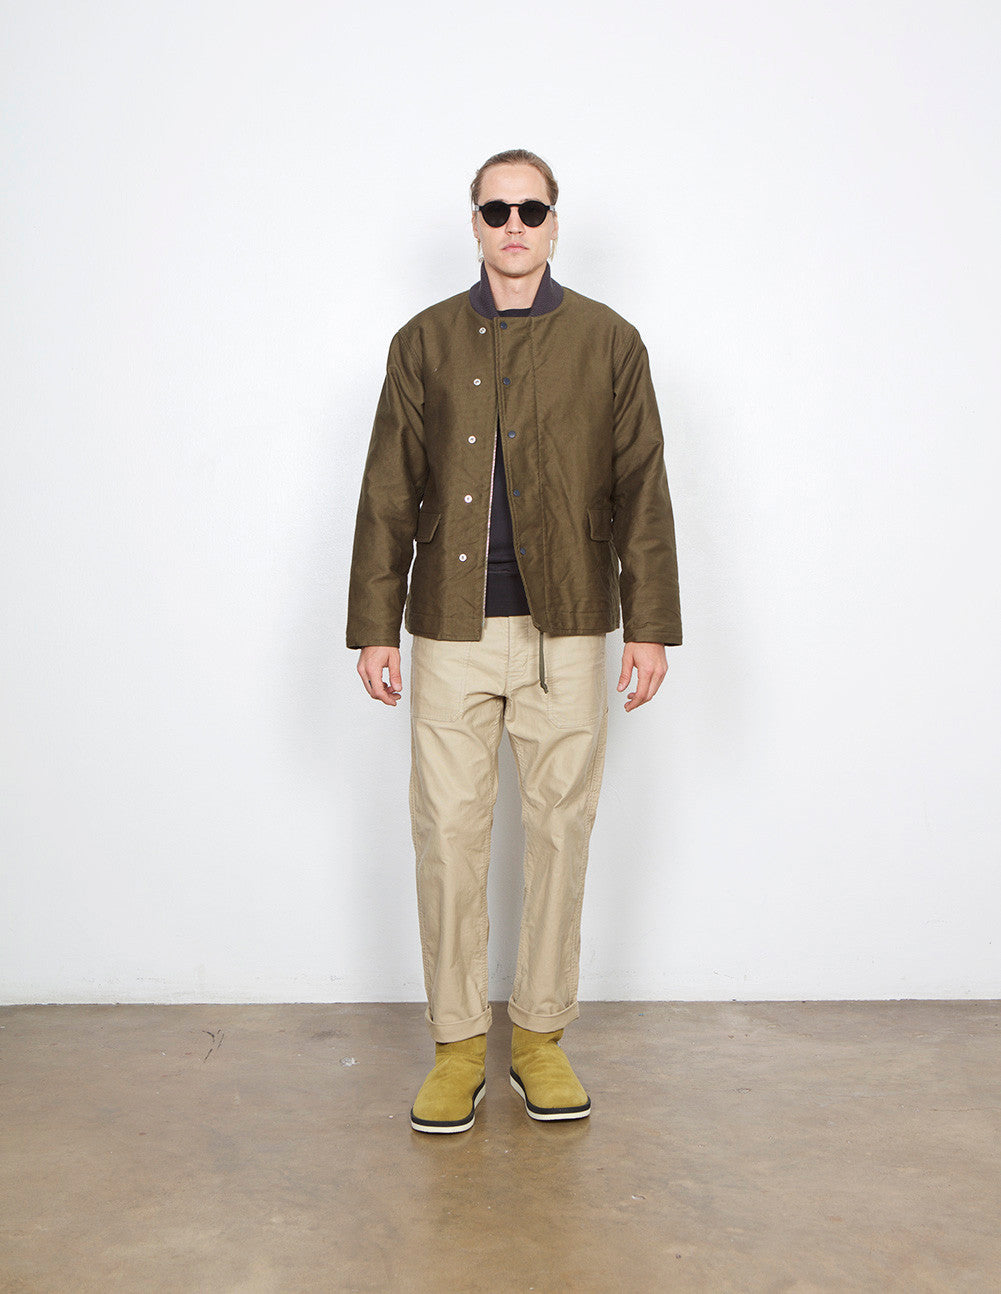 Codelane Deck Jacket